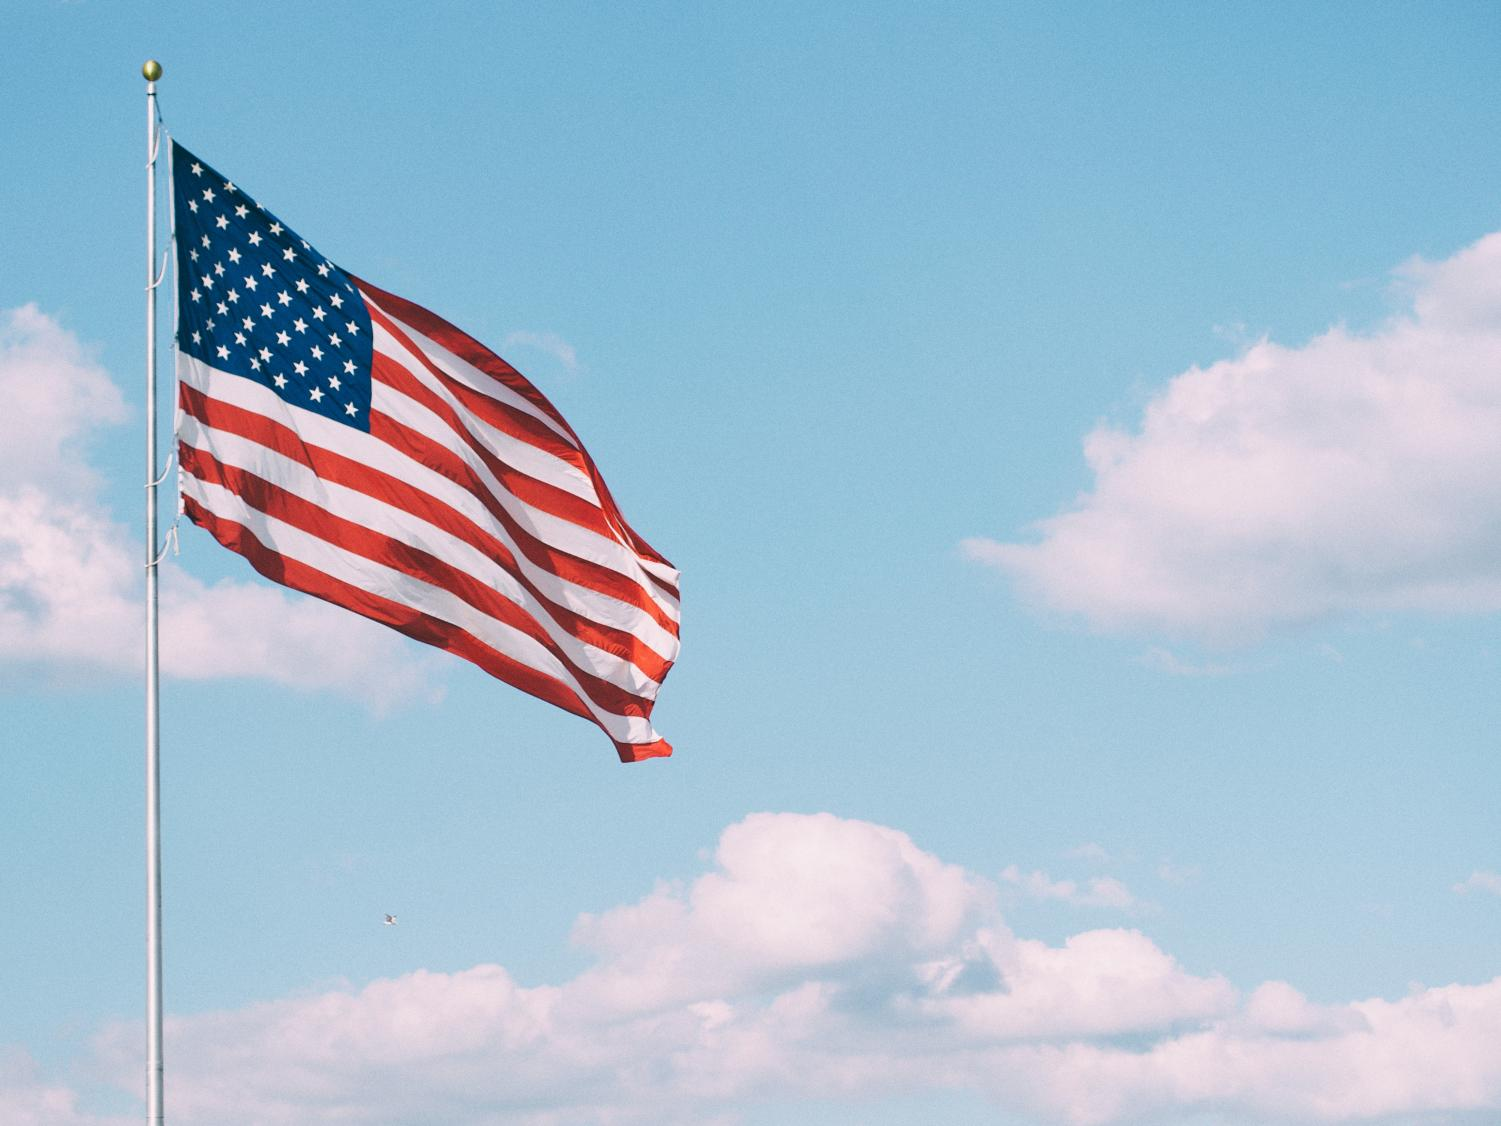 An American flag blows in the wind on a cloudy day. Photograph by Aaron Burden on Unsplash